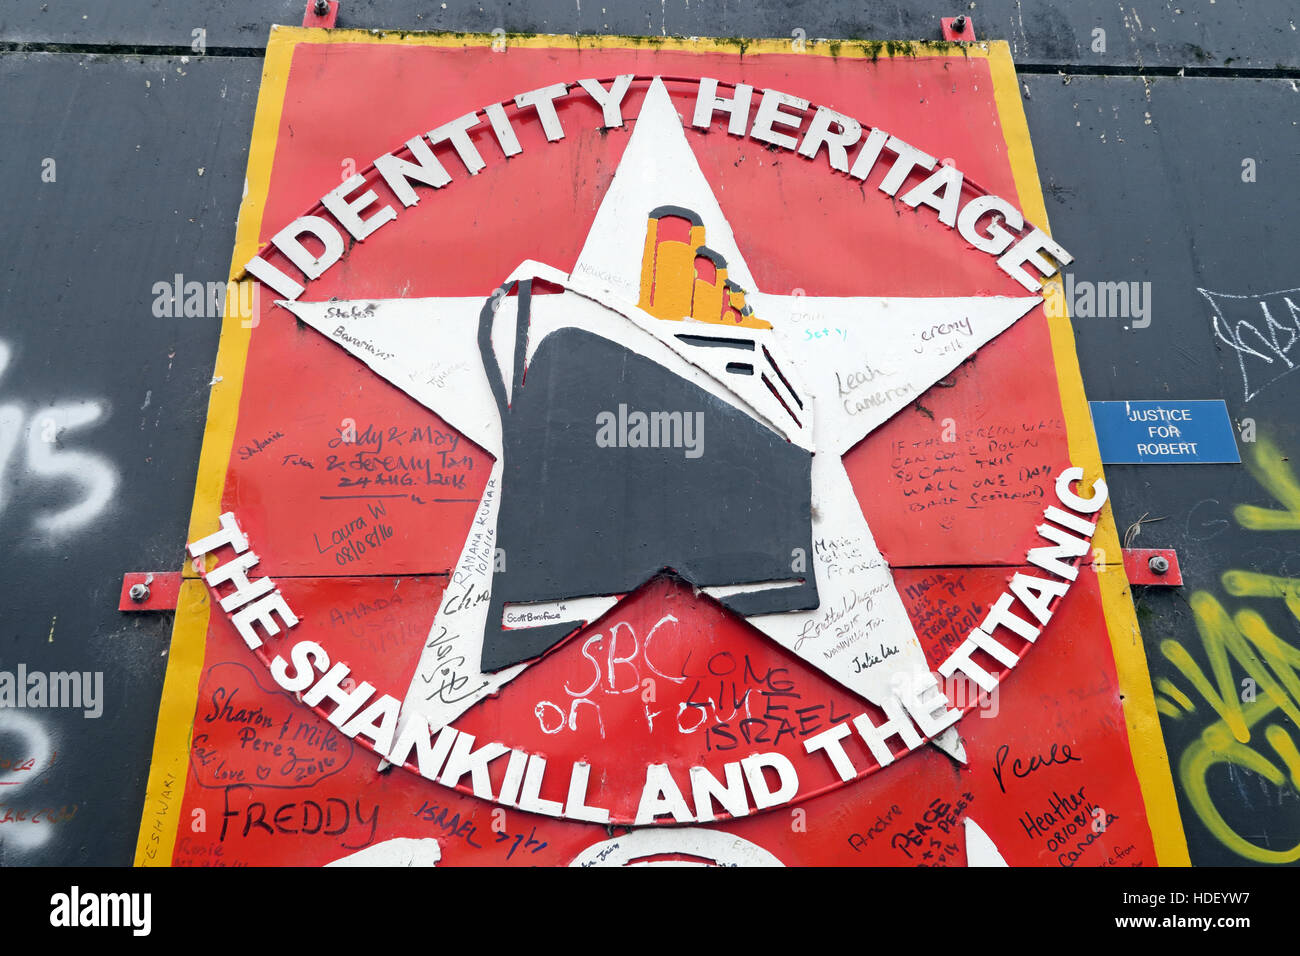 Identity,Heritage,International Peace Wall,Cupar Way,West Belfast , Northern Ireland, UK - Stock Image